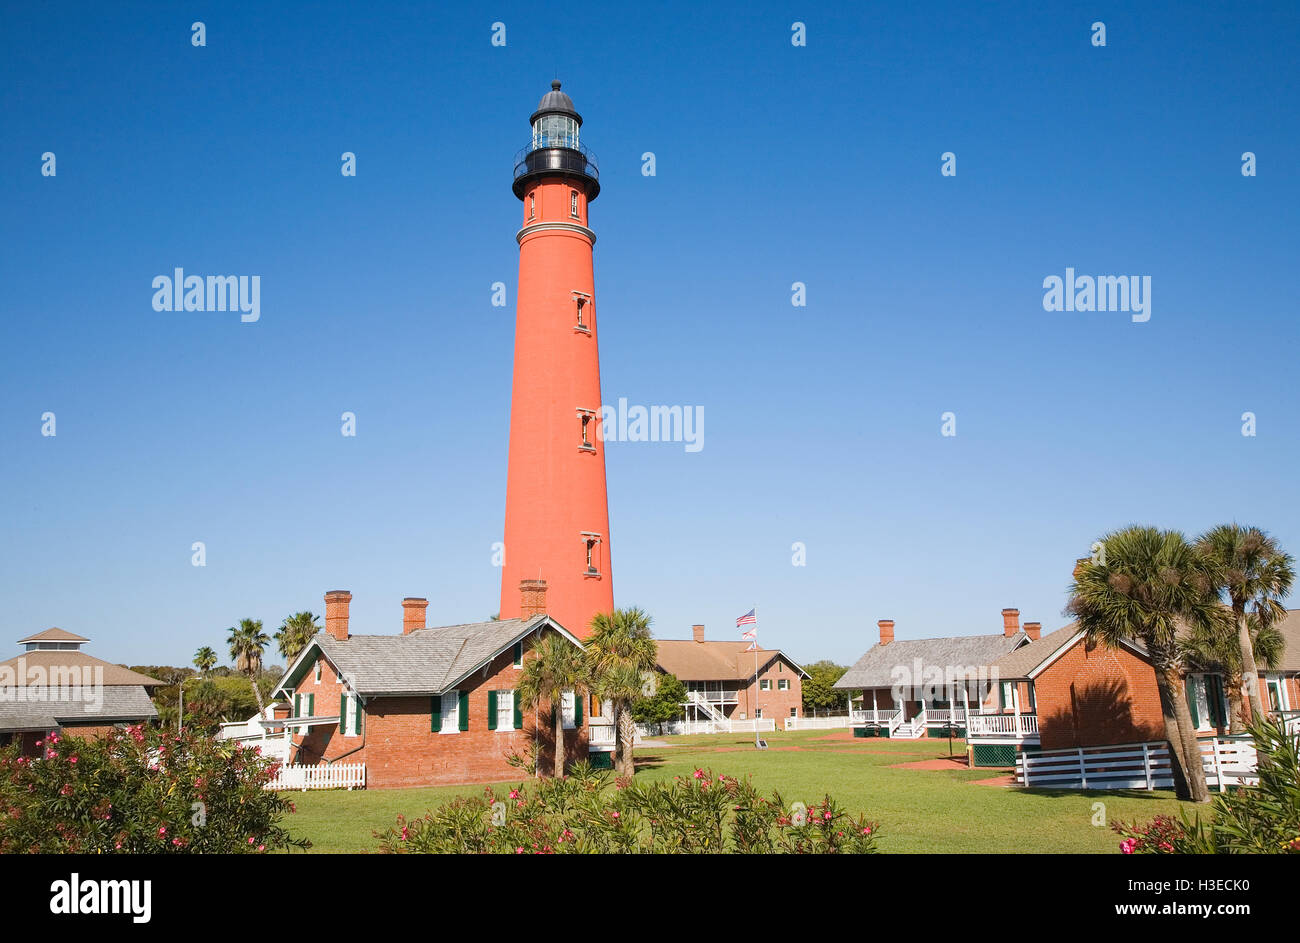 The 175 foot orange masonry tower of Ponce de Leon Inlet Lighthouse is the tallest in Florida, once called Mosquito - Stock Image